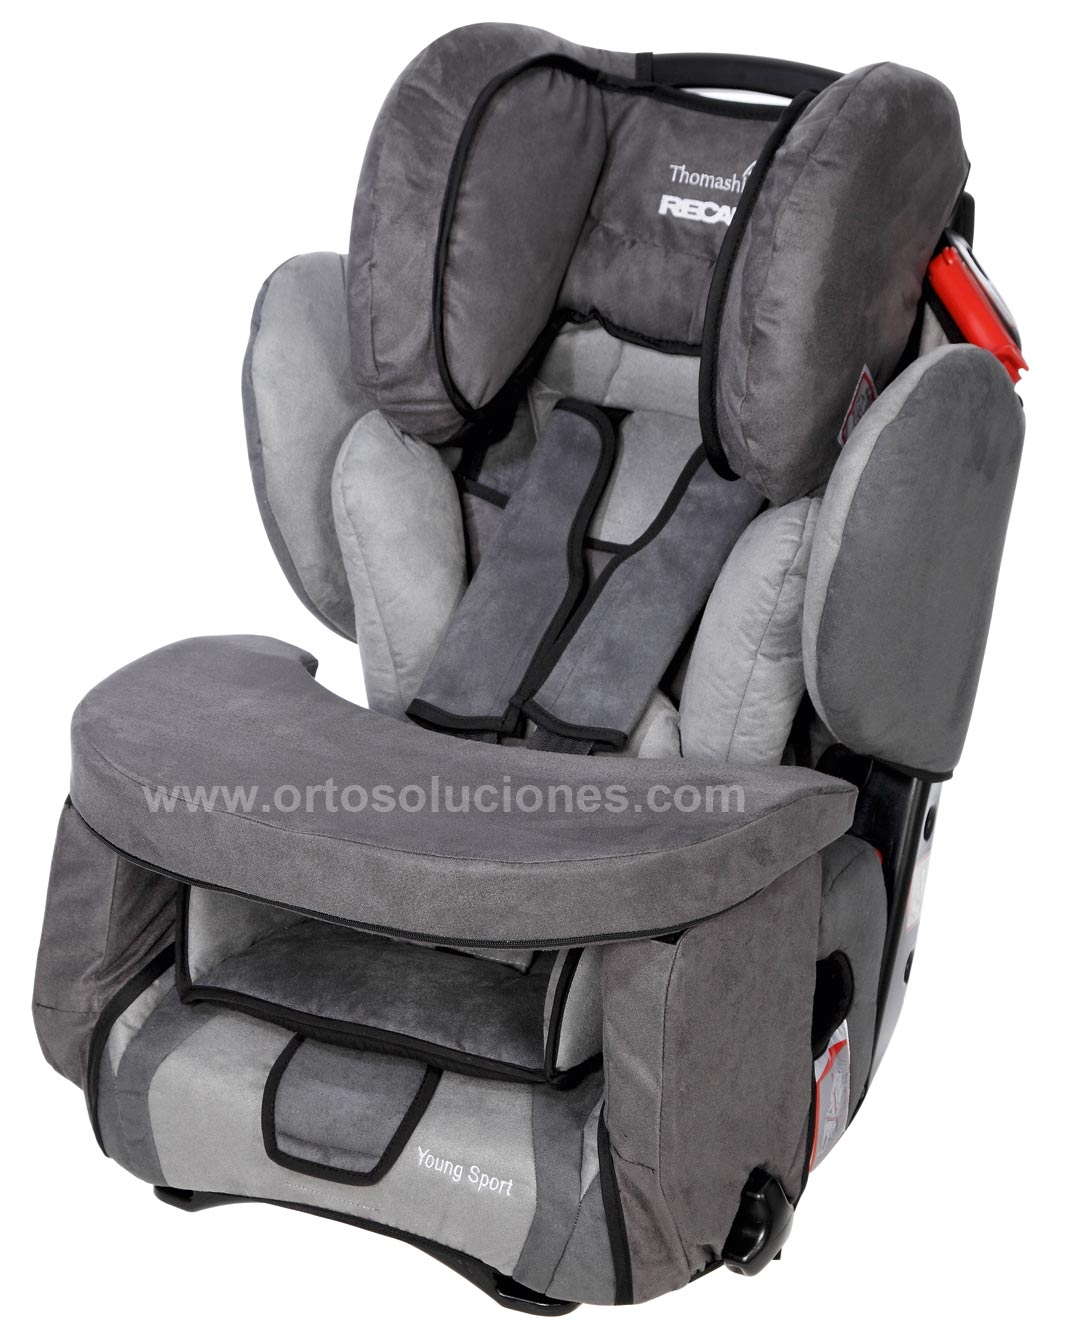 Pin fotos de asiento auto para bebe imagenes on pinterest for Asientos ninos coche